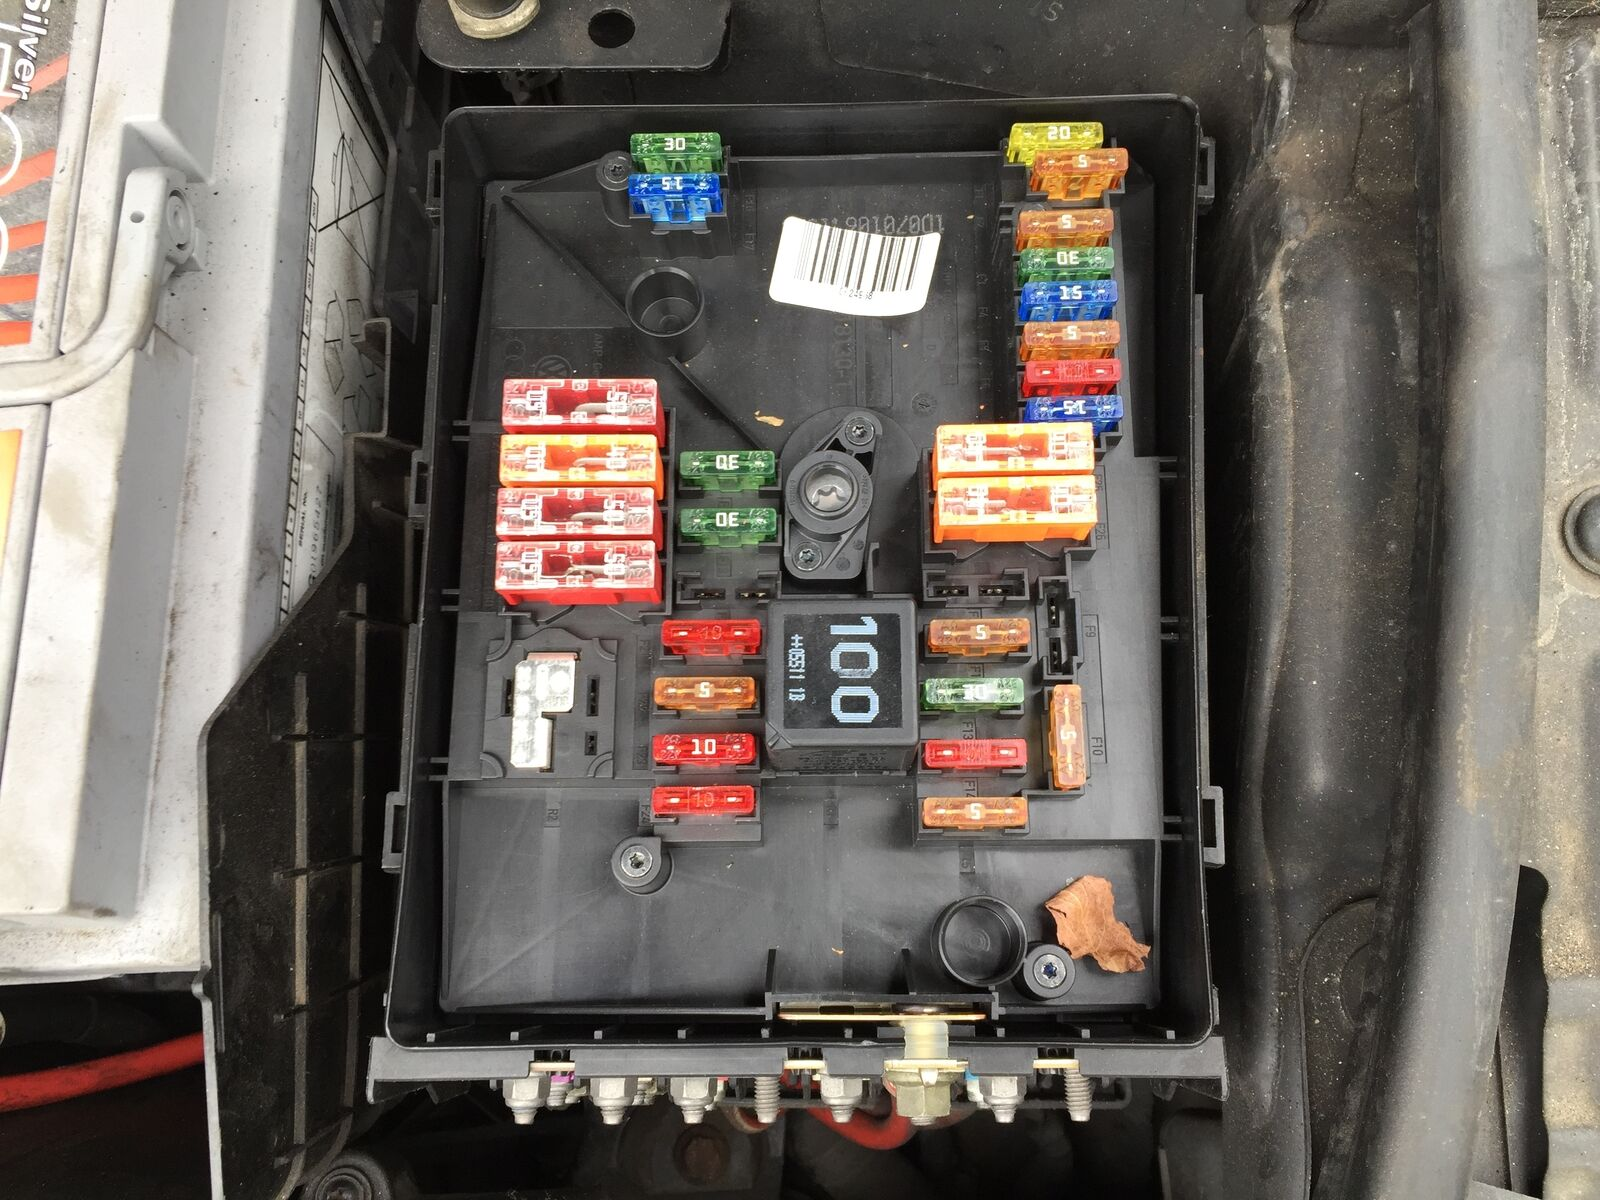 1995 Mustang 3 8 Fuse Diagram Audi A3 Box Location 1999 Opinions About Wiring 2008 Will Be A Thing U2022 Rh Exploreandmore Co Uk 2006 A4 2004